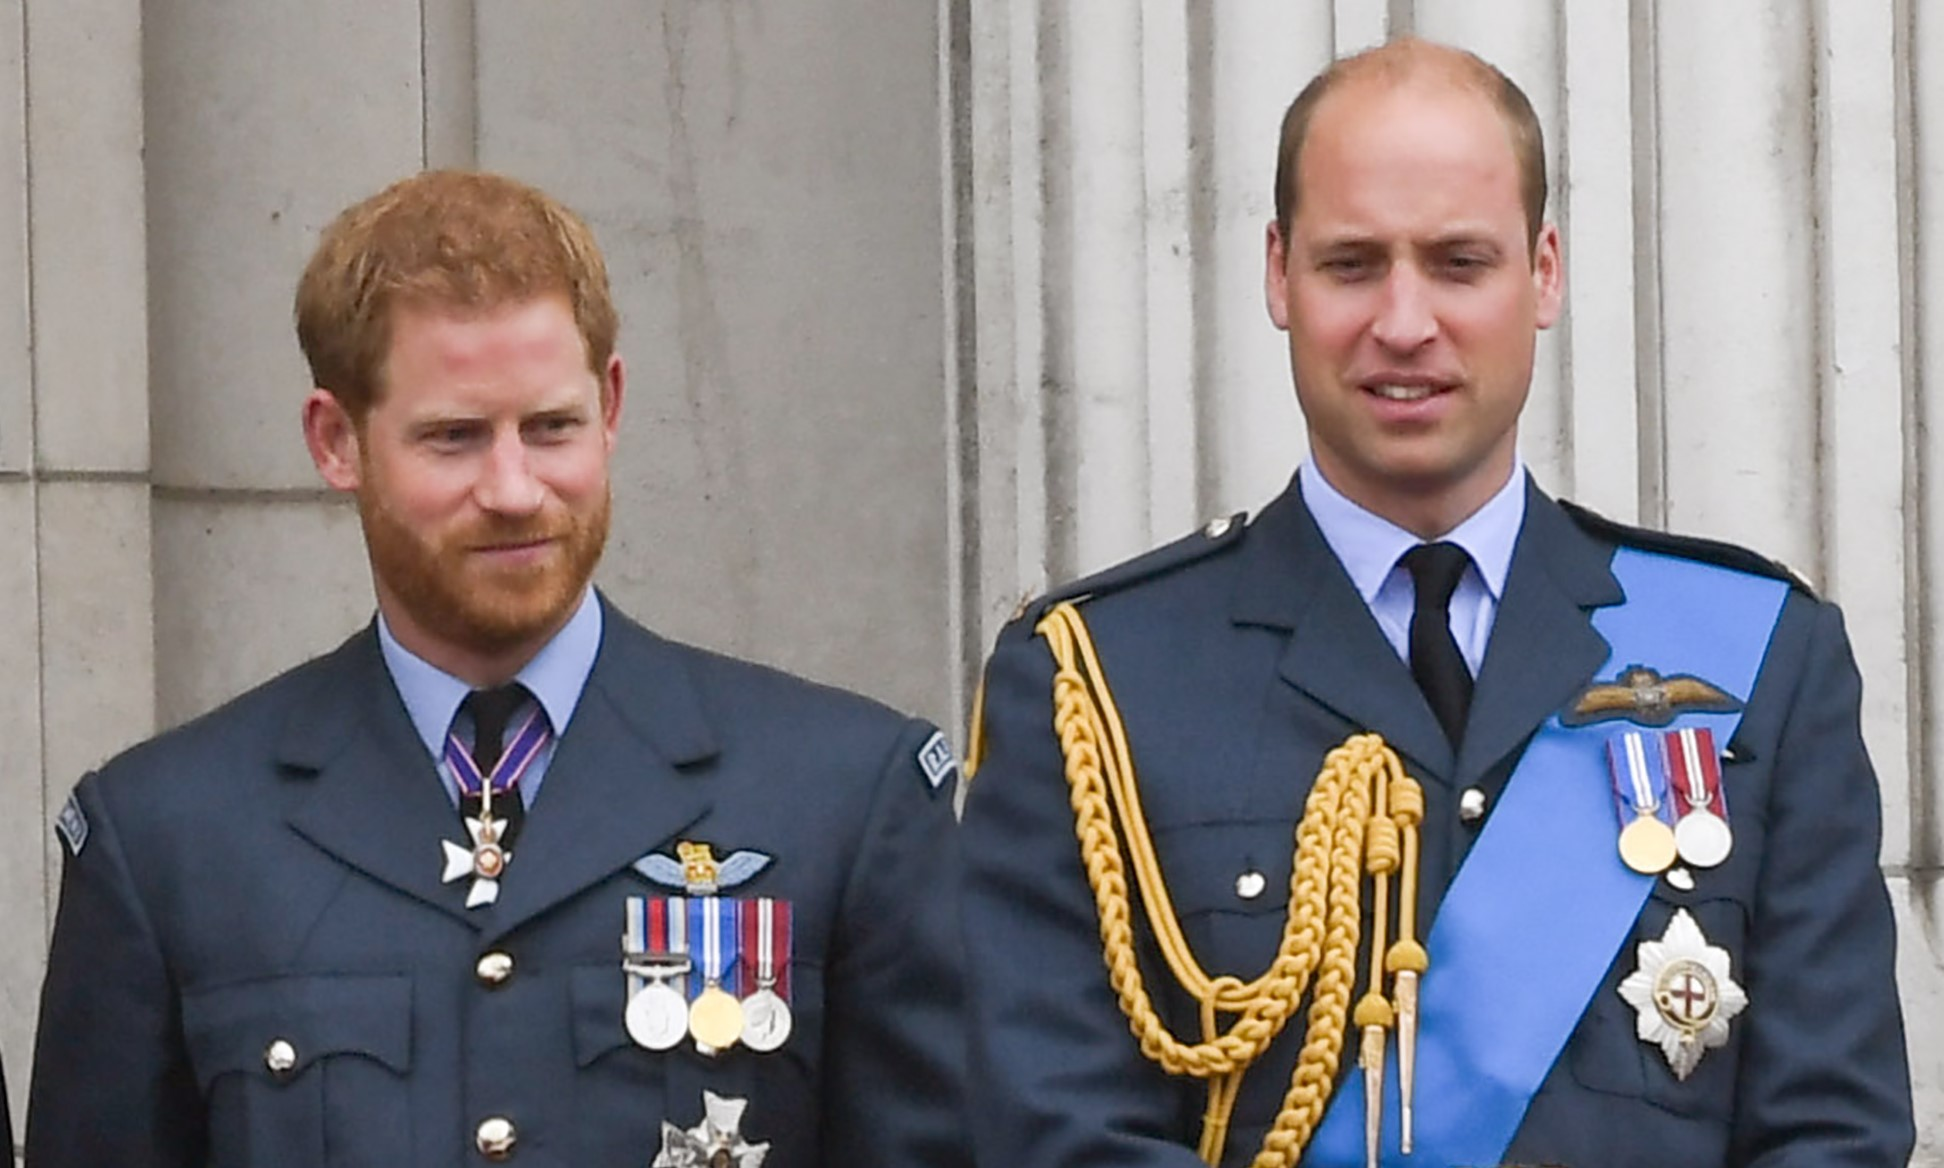 Prince Harry and William 'finally back in touch' according to royal expert